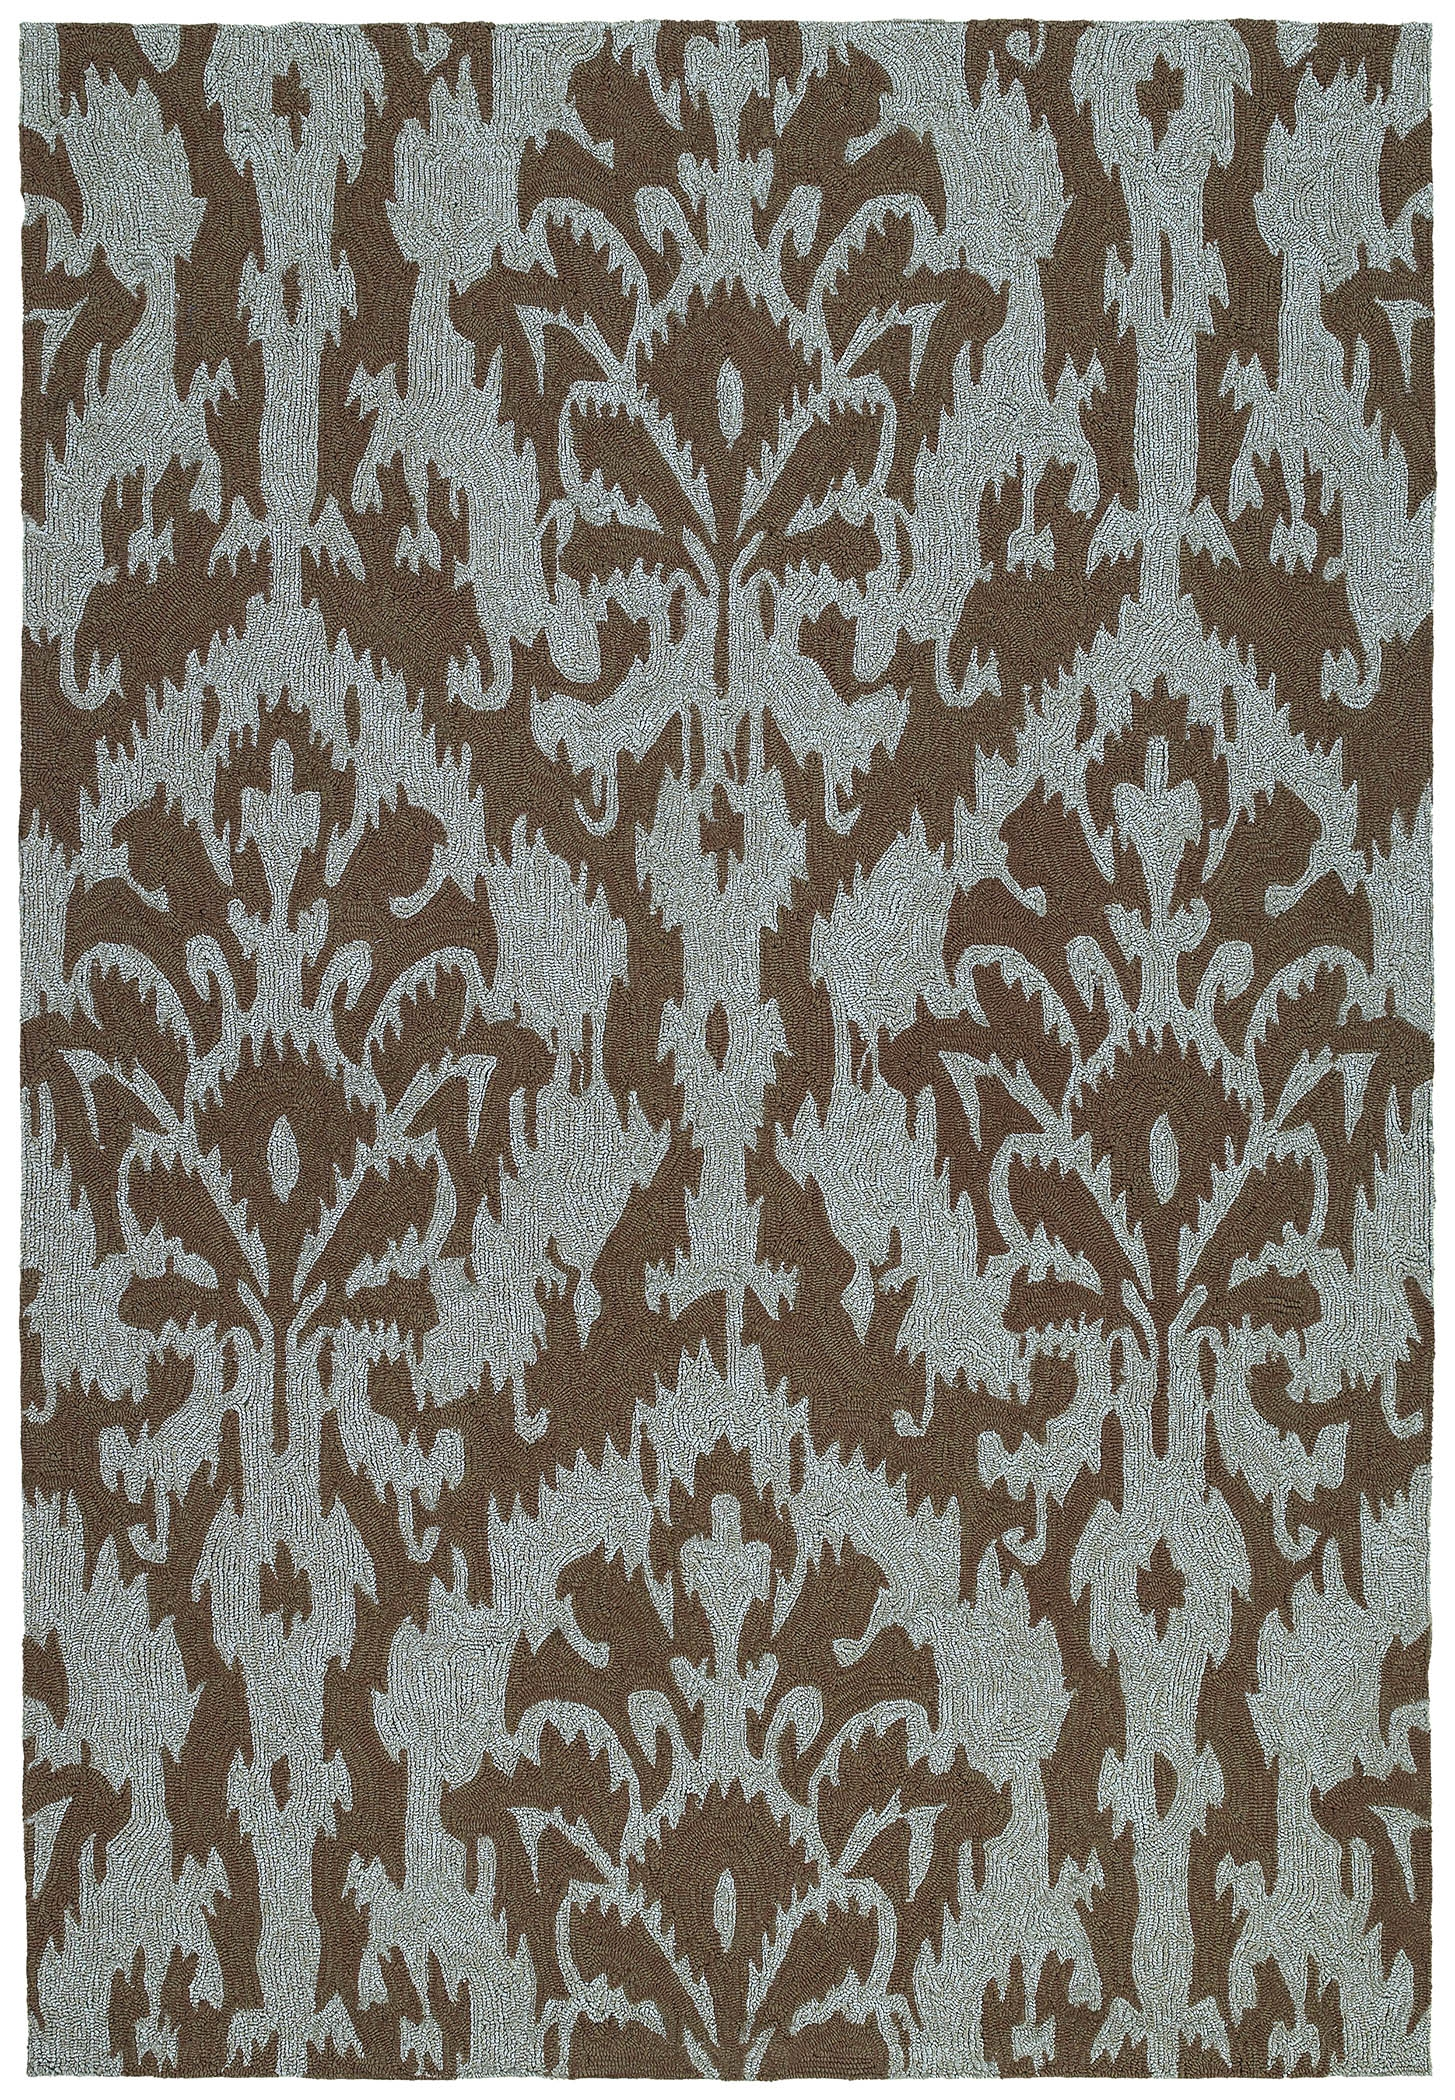 Habitat 2106 Sea Spray 60 Mocha Rug by Kaleen